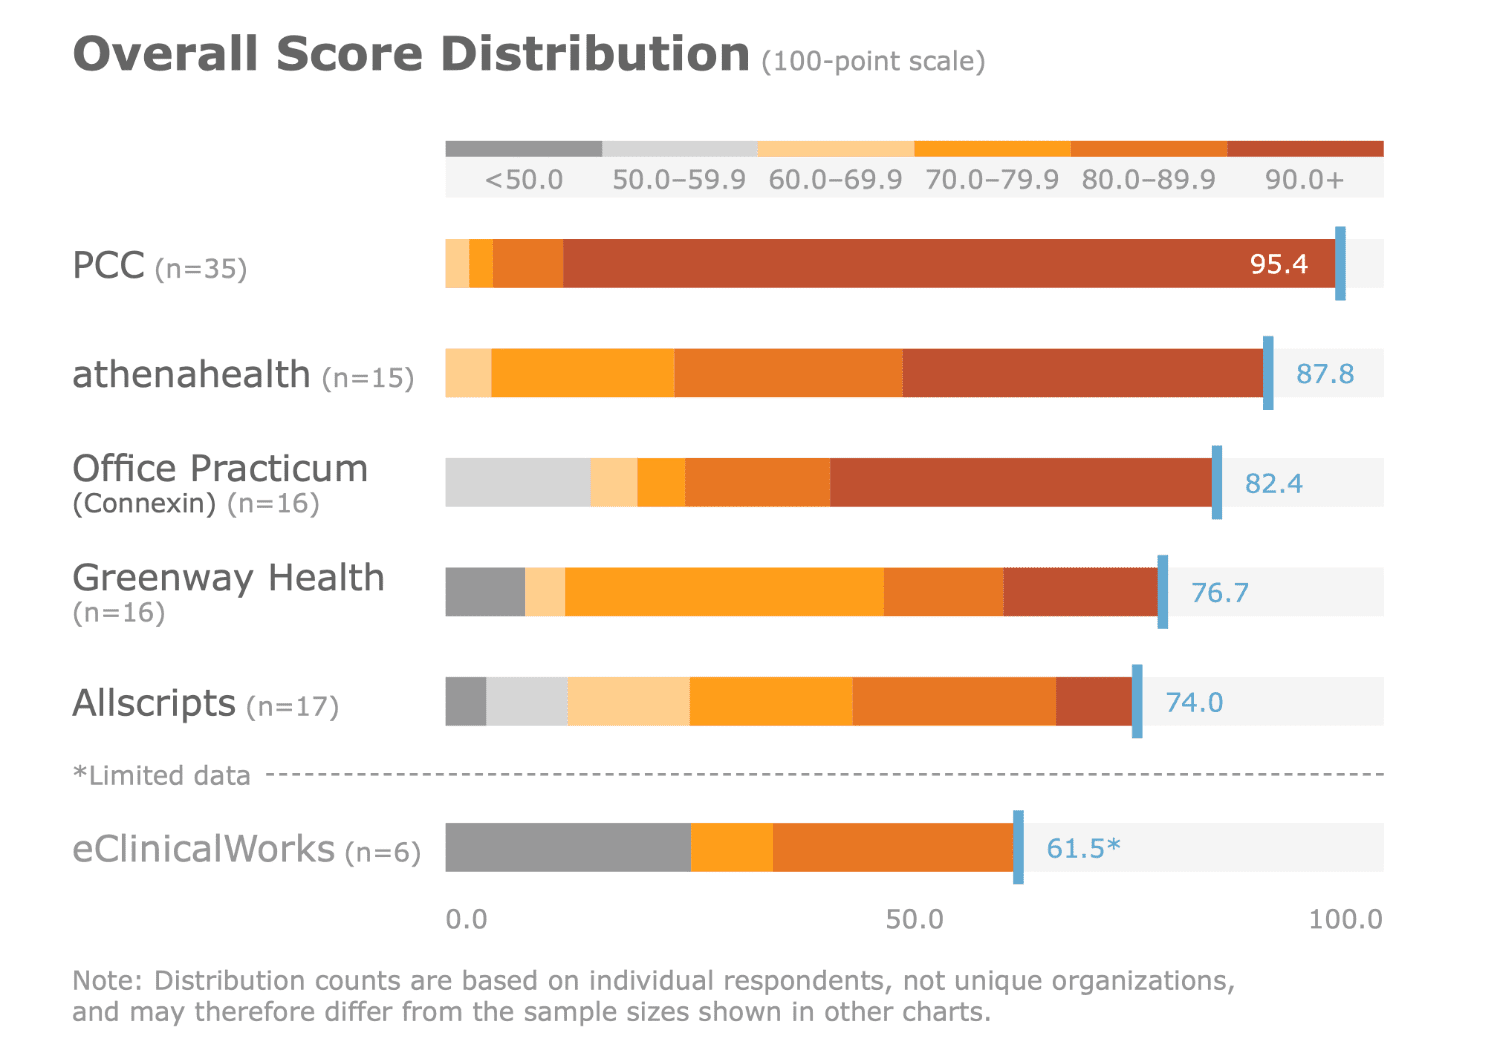 KLAS Score Distribution - Why Choose PCC?